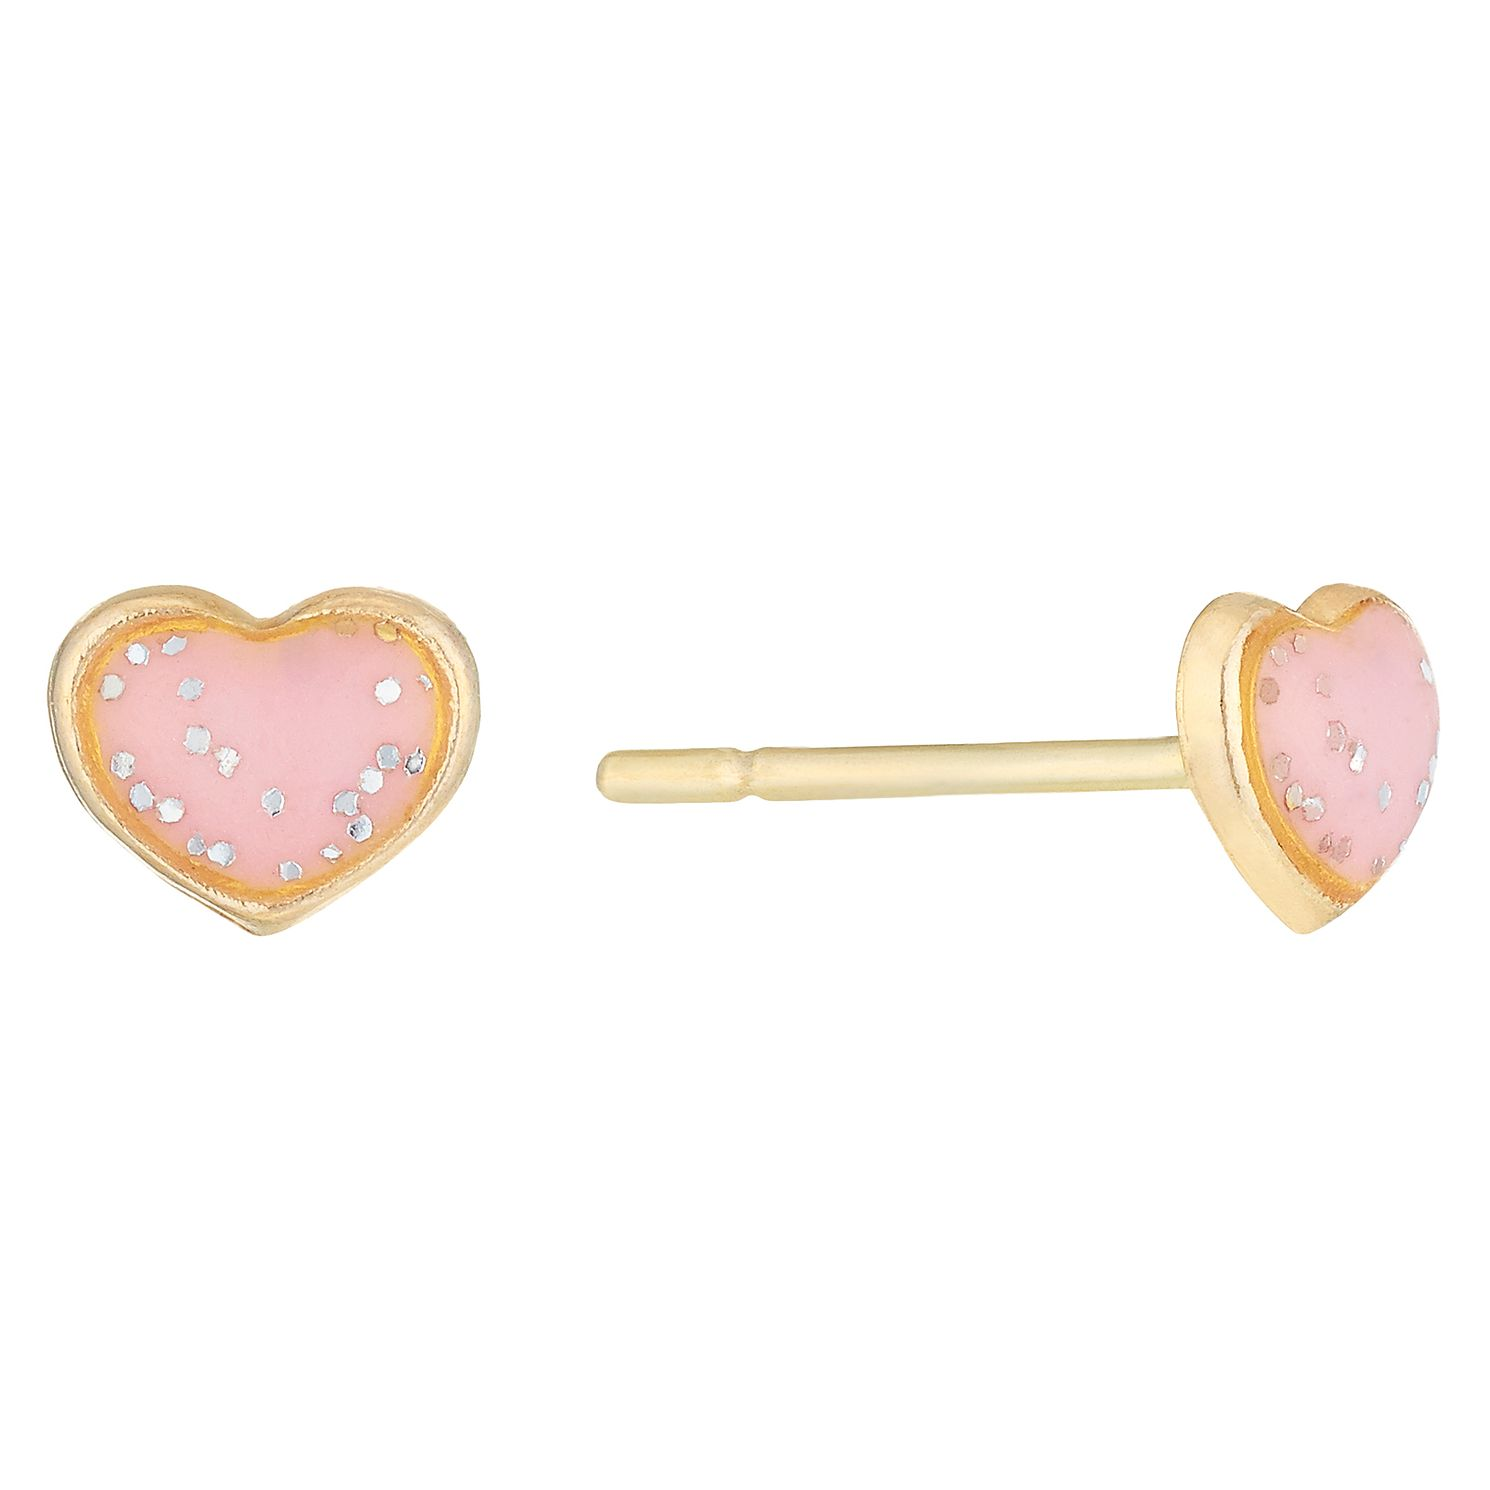 9ct Gold Speckled Pink Enamel Heart Stud Earrings - Product number 6136222